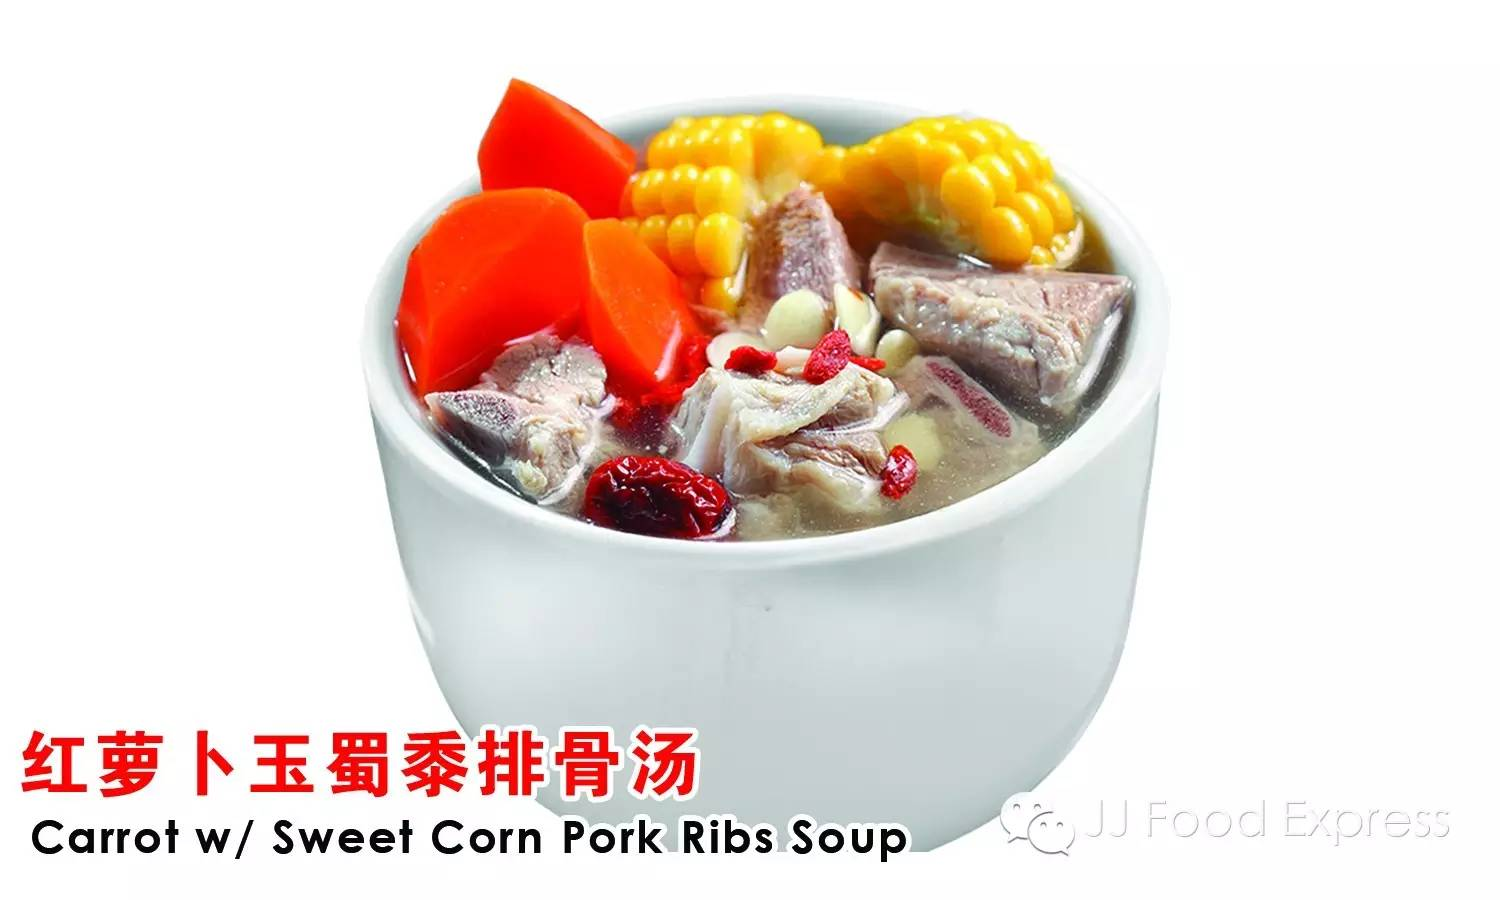 carrot with sweet corn pork ribs soup